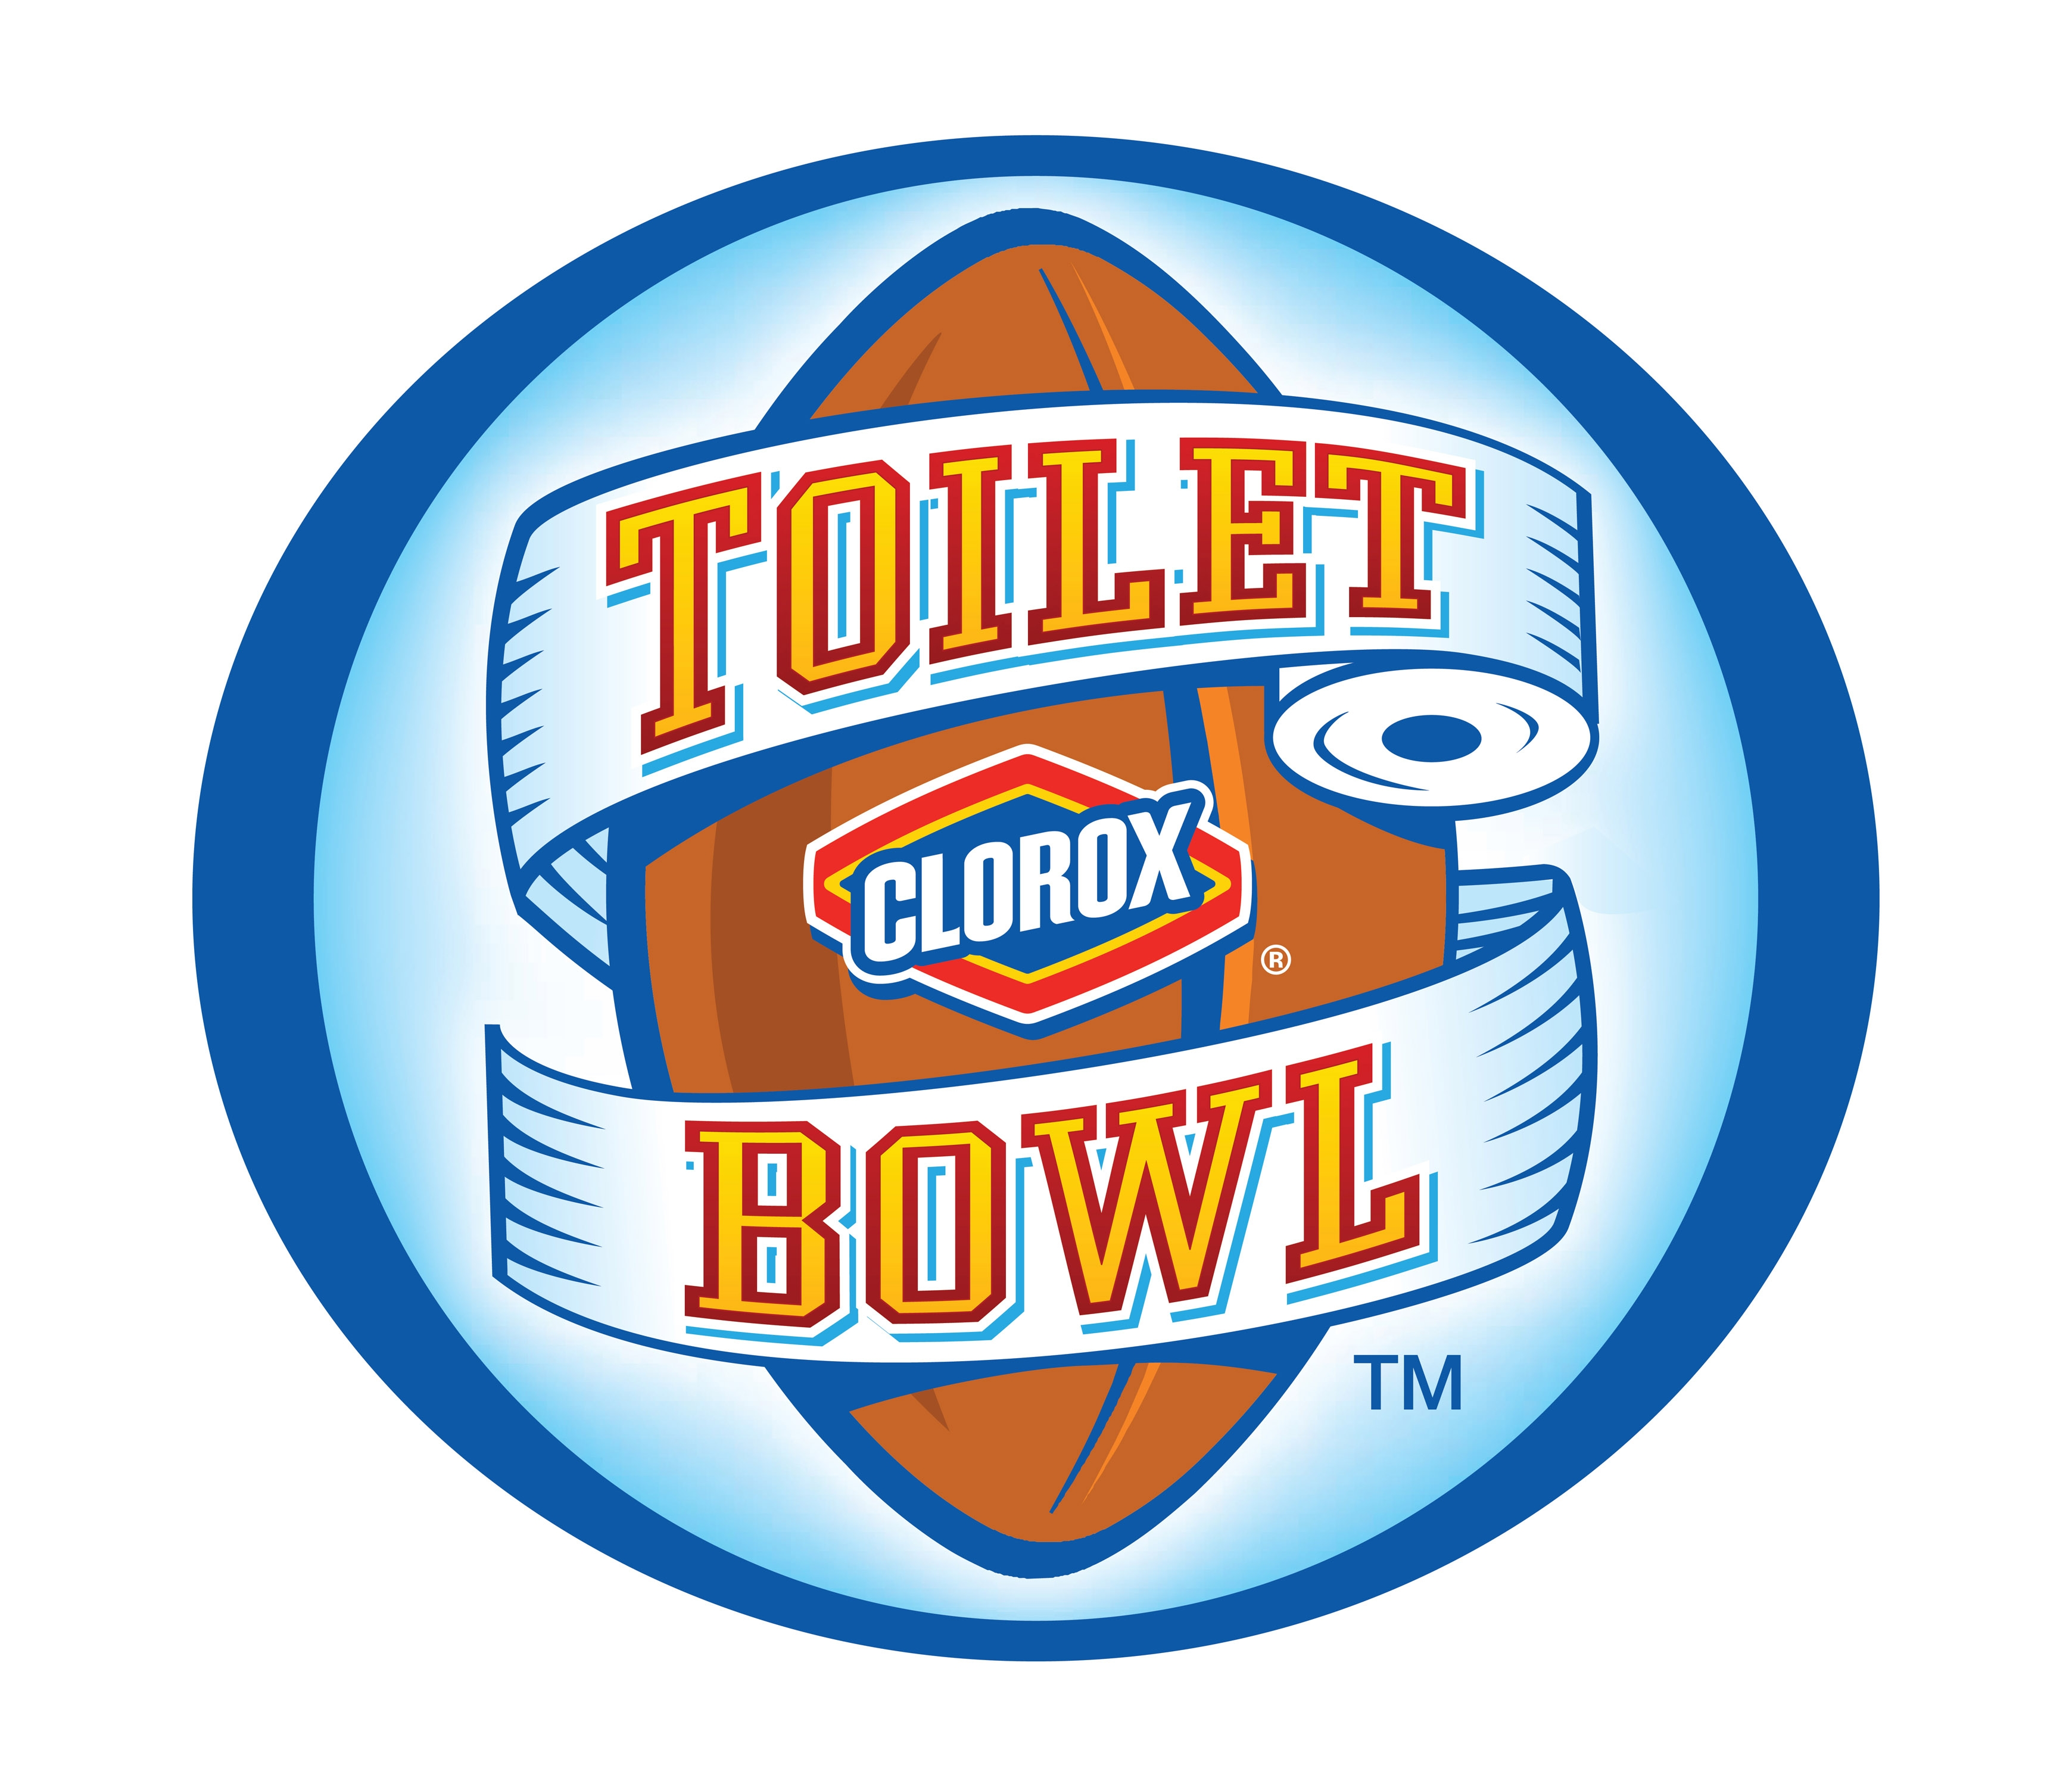 Clorox Toilet Bowl Tour and Giveaway - Mom's Blog